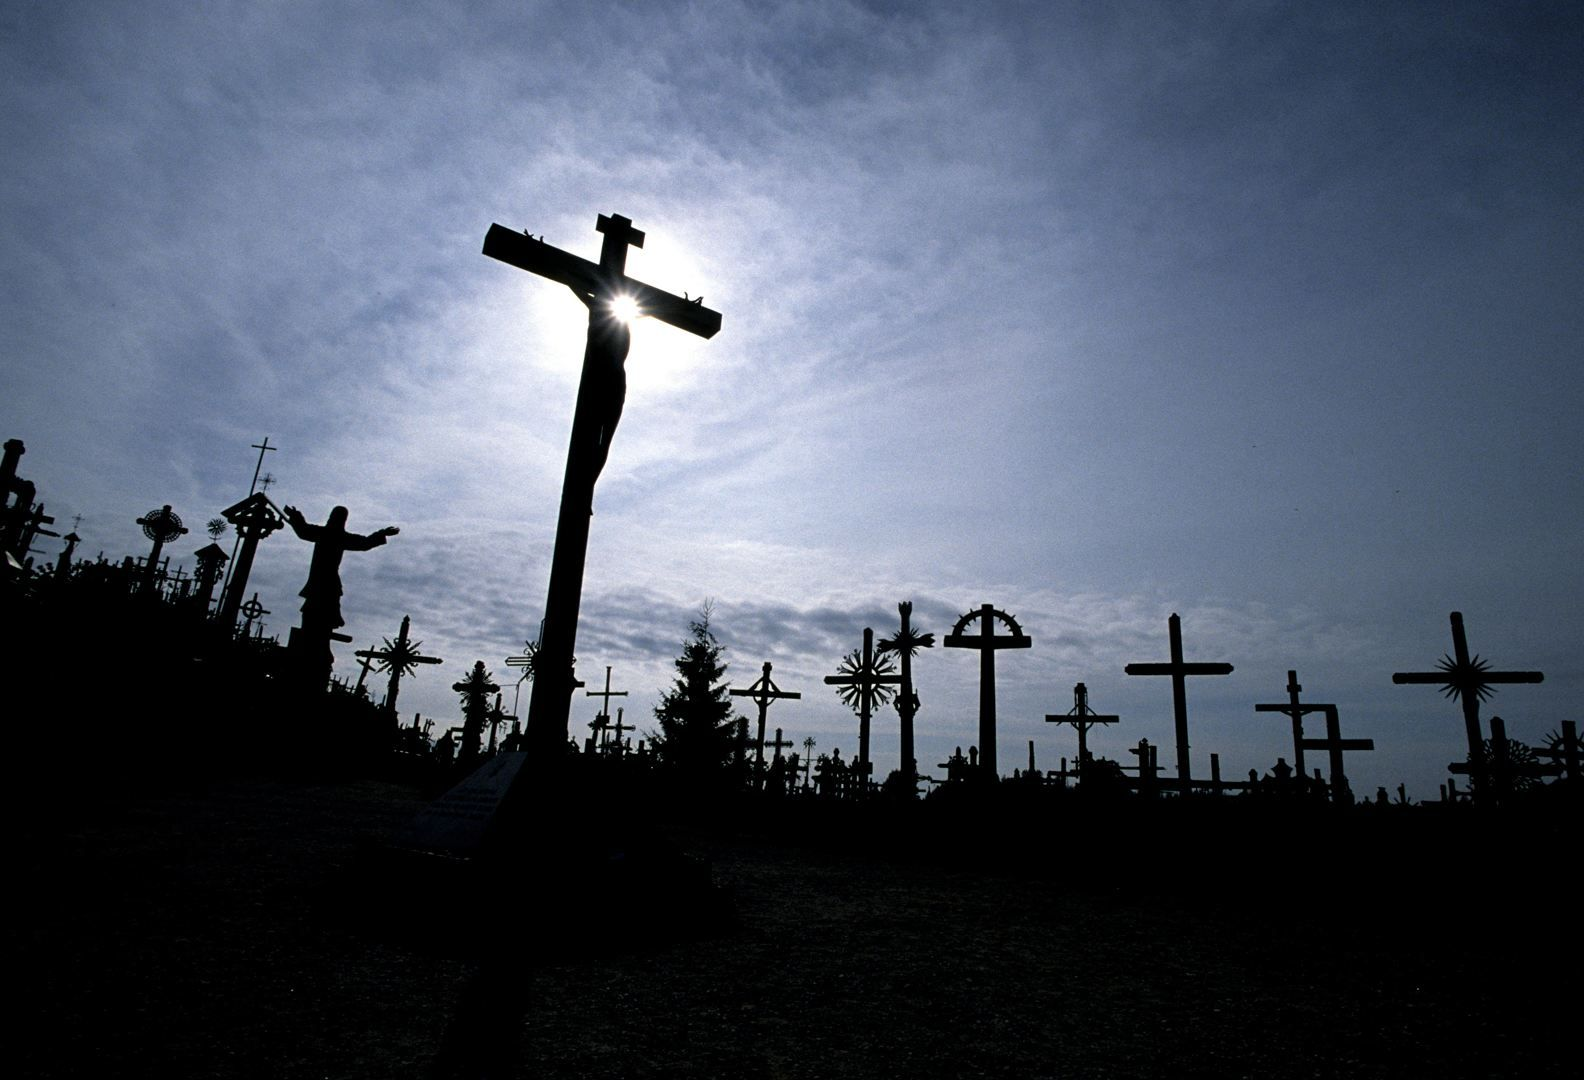 Yahoo! News - Latest News & Headlines. Hill of Crosses in Northern Lithuania